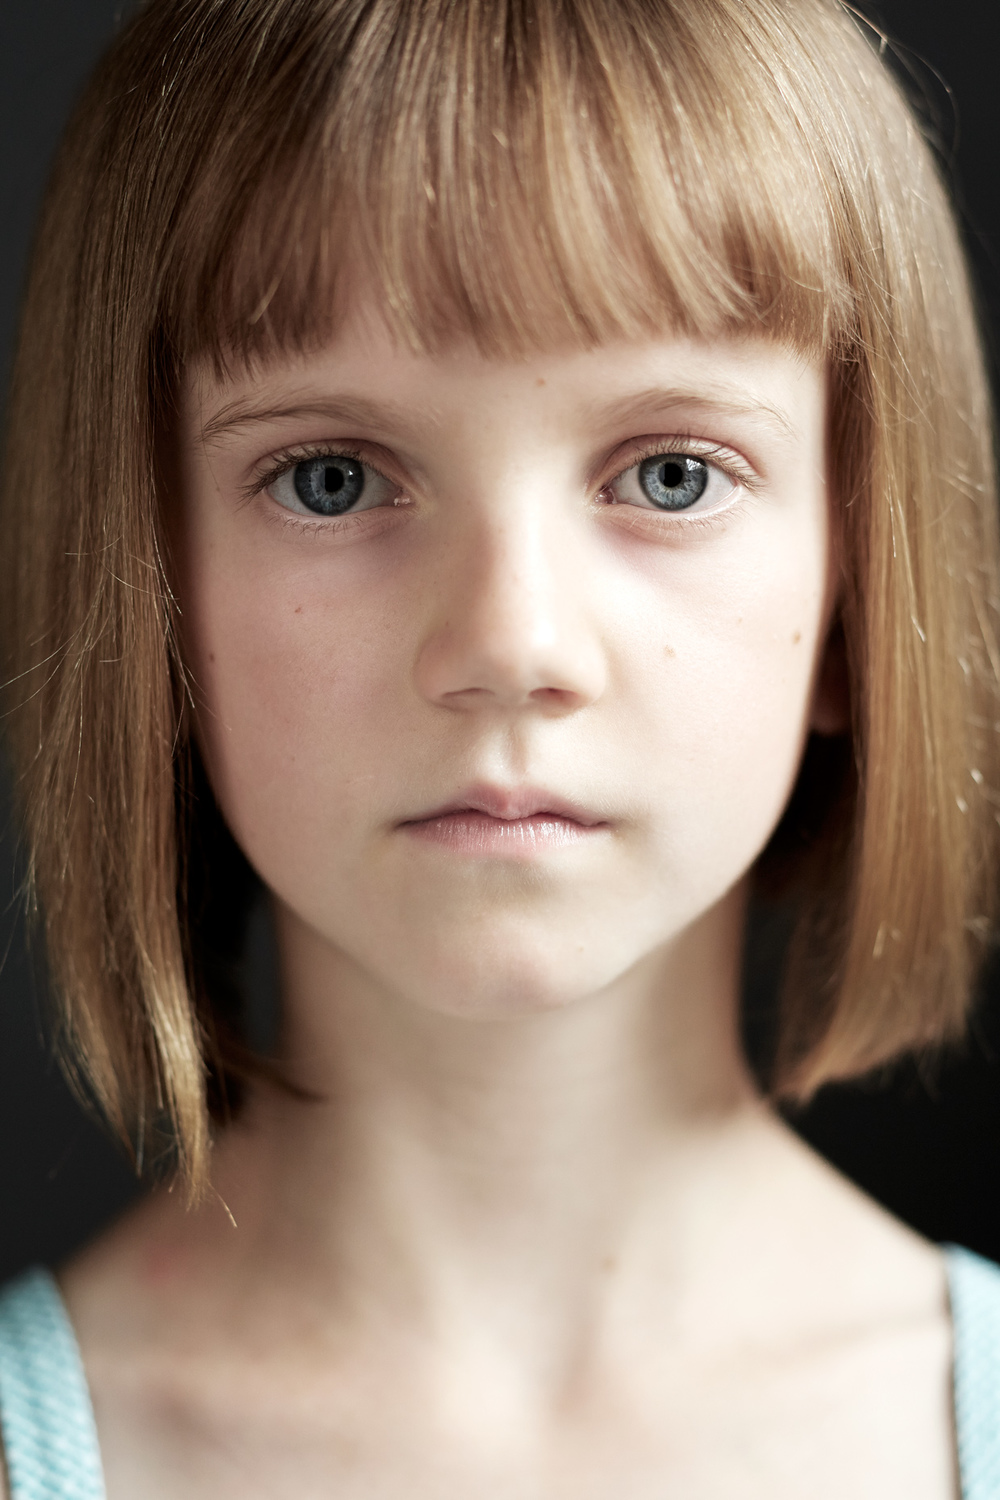 Portrait Photography Derek Israelsen Kid Closeup Serious